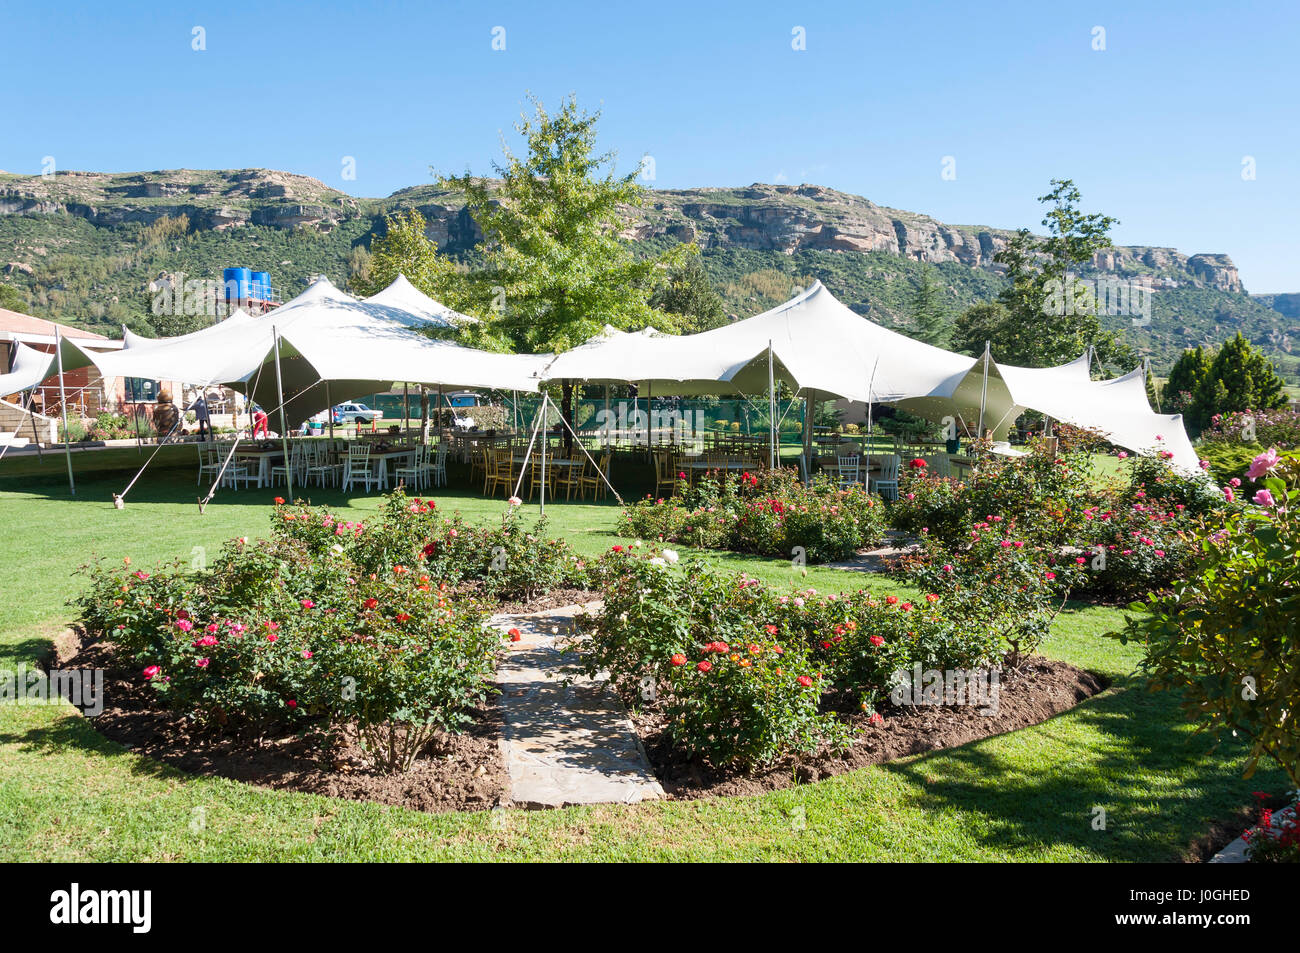 Marquee on lawn in gardens of Botleng Guest House, Ha Makhoathi, Maseru District, Kingdom of Lesotho - Stock Image